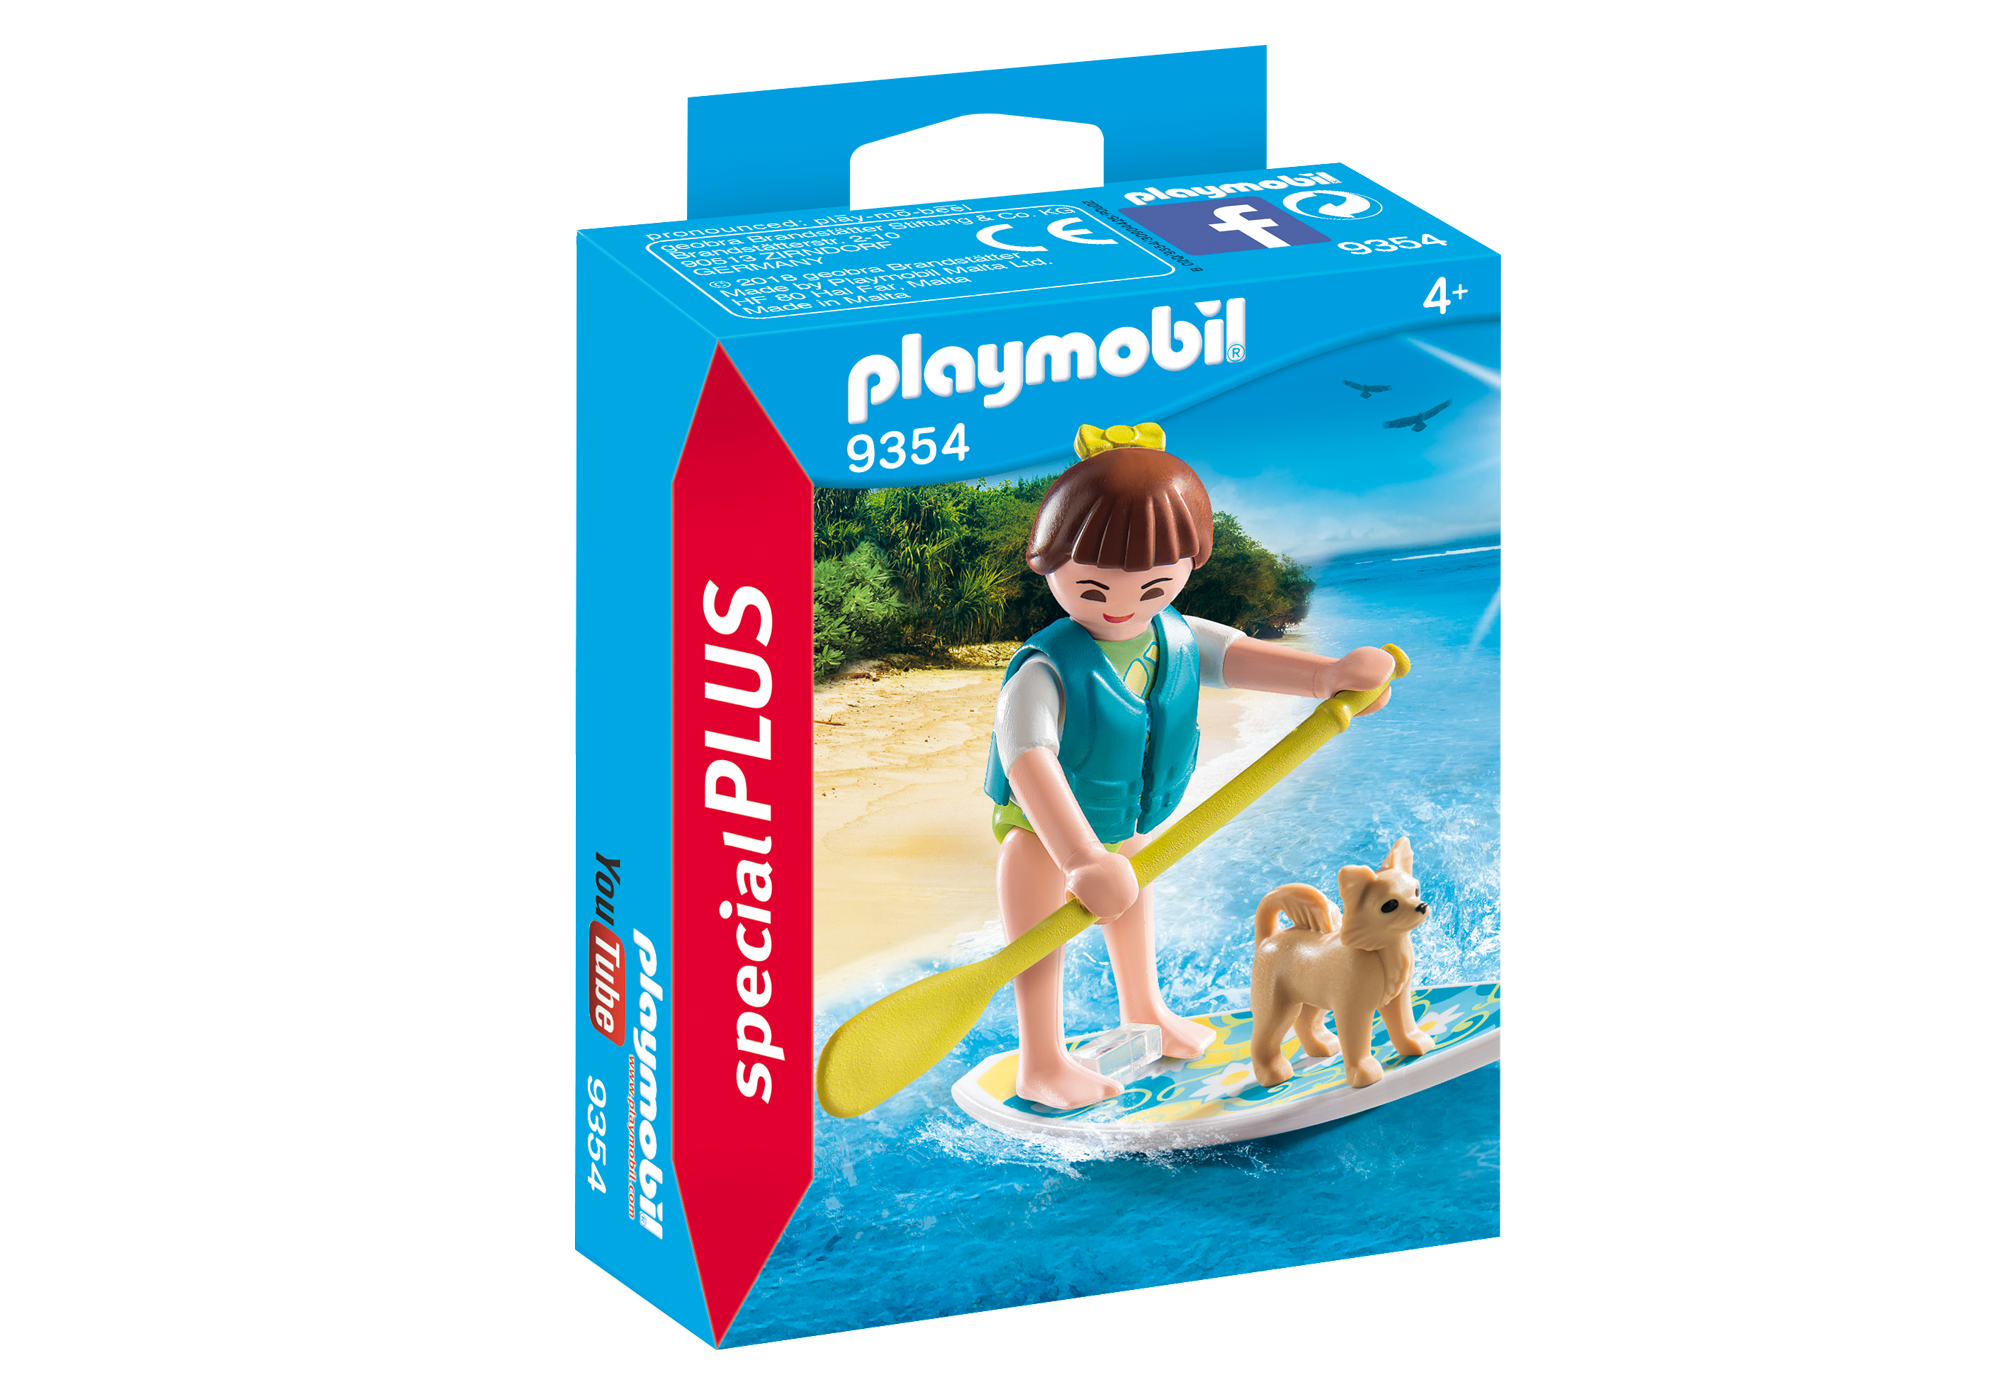 http://media.playmobil.com/i/playmobil/9354_product_box_front/Paddleboarder